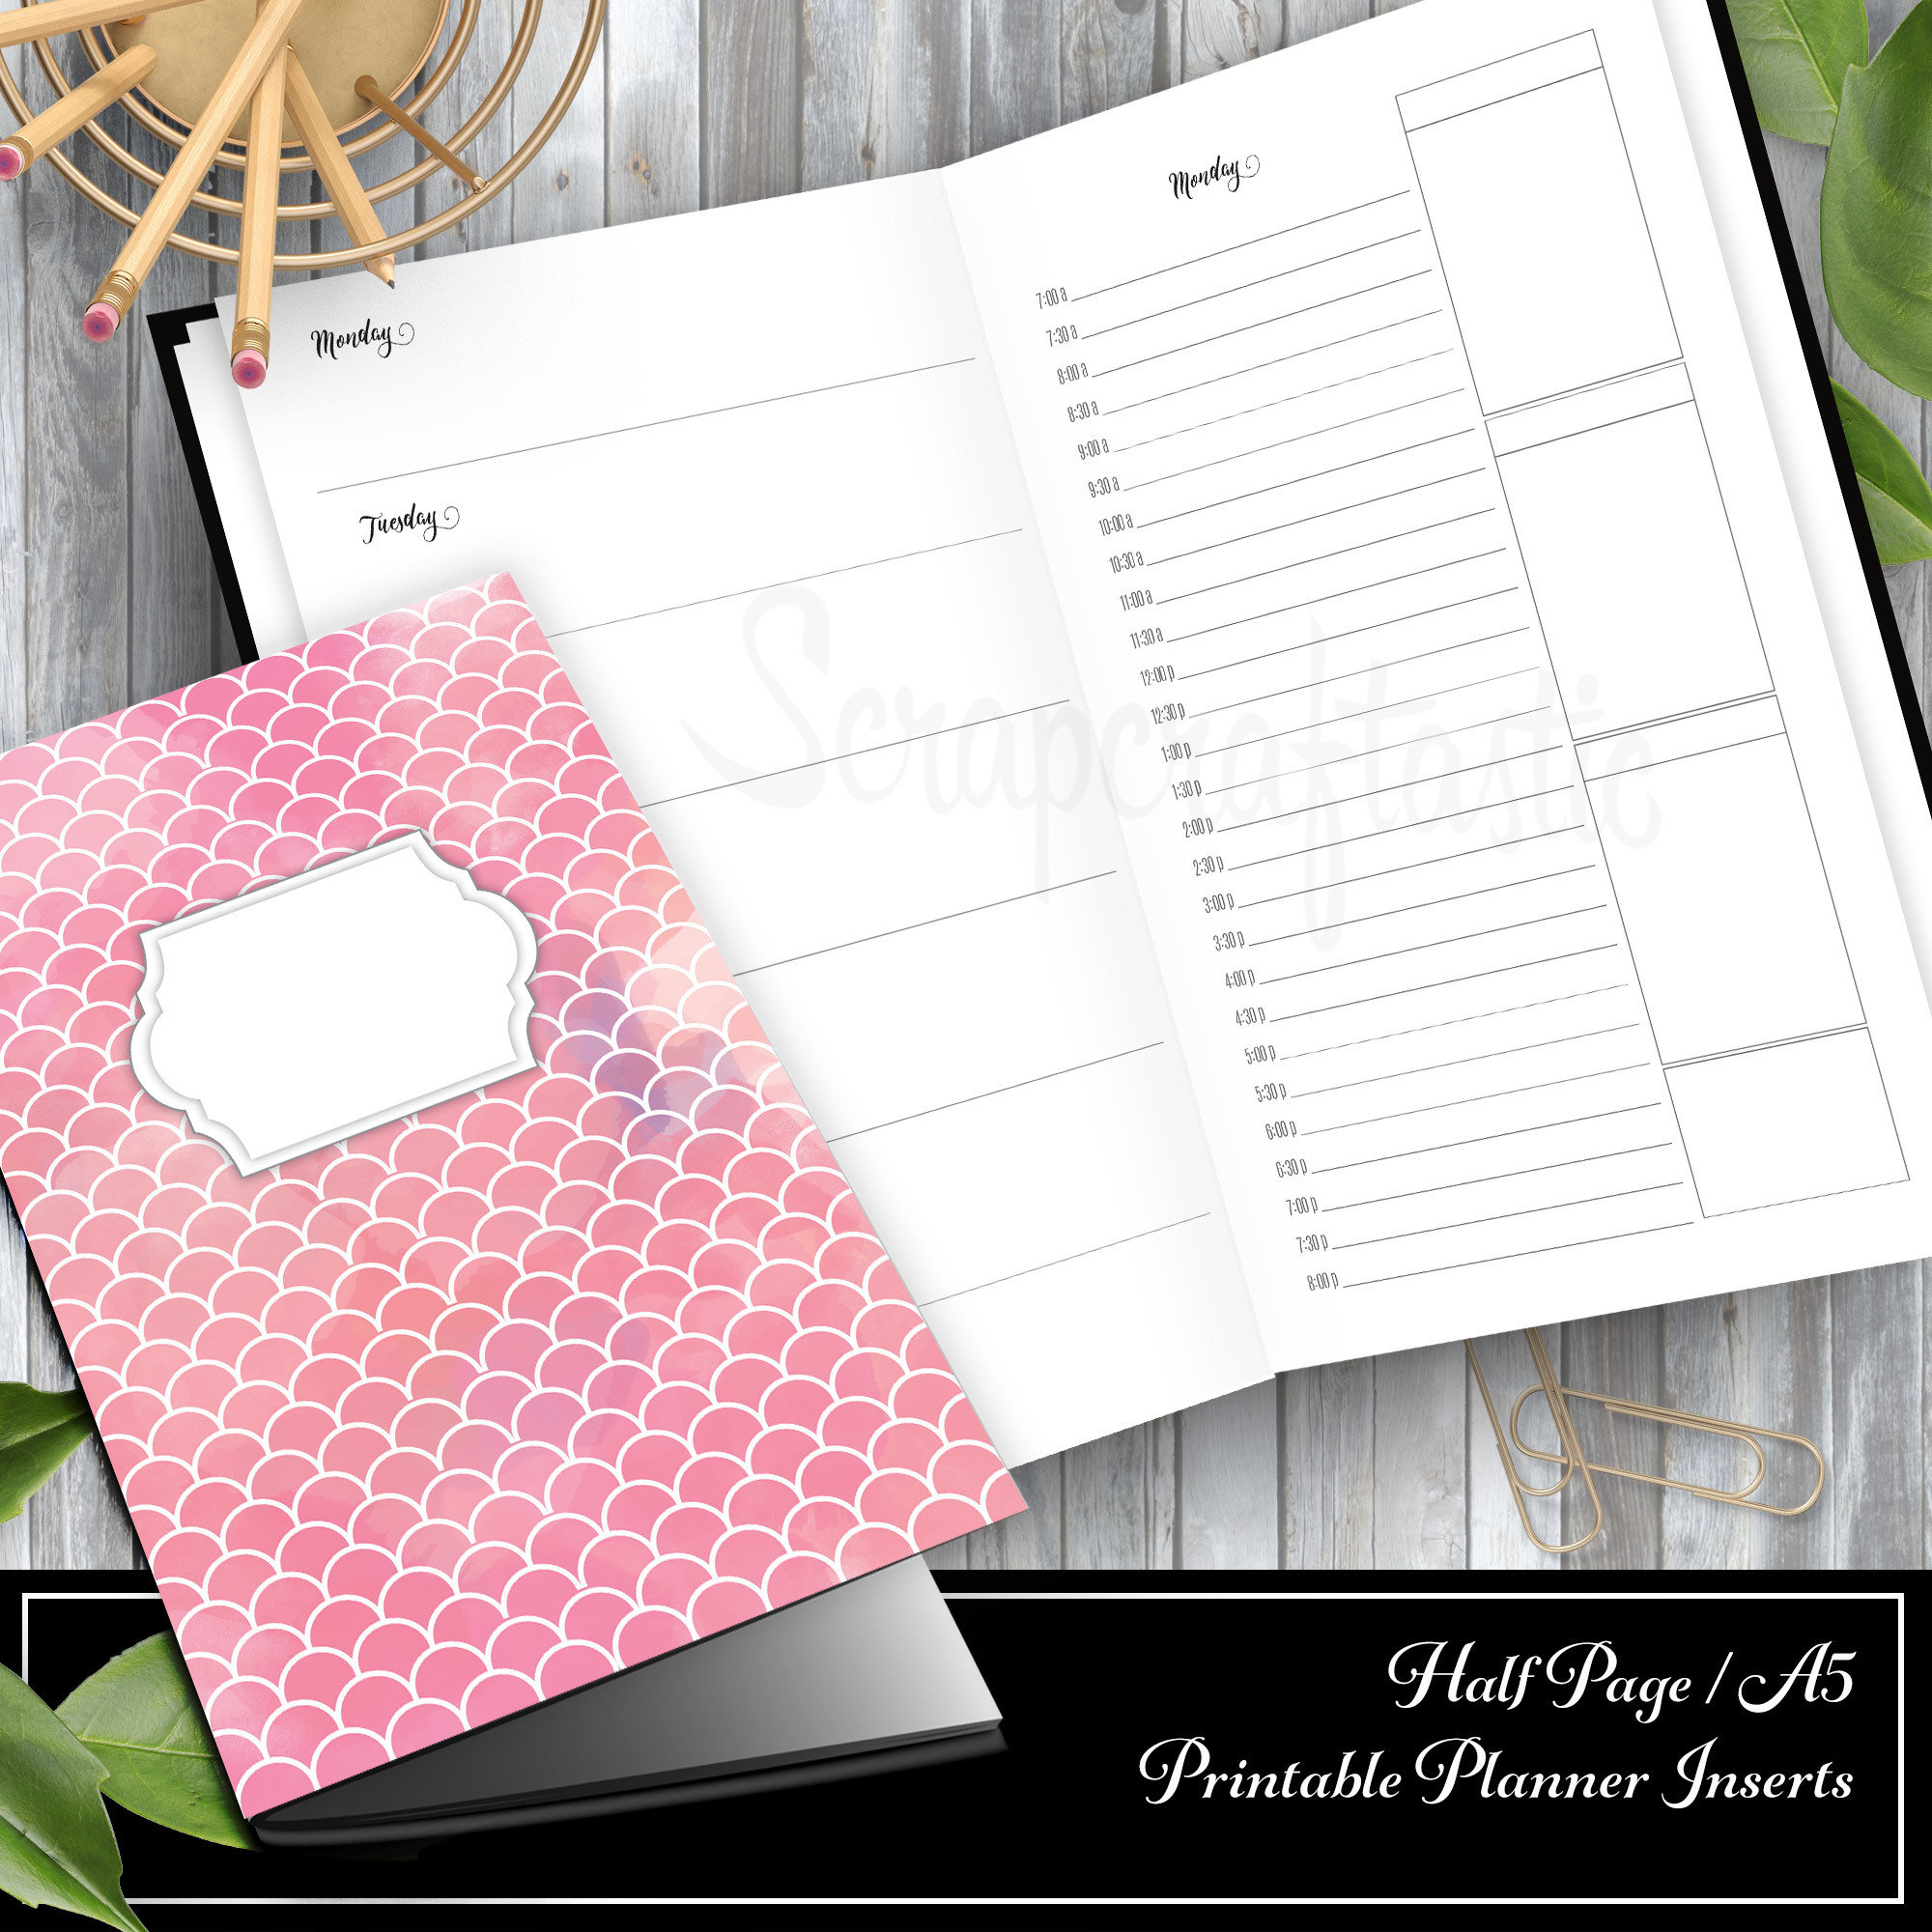 Full Month Notebook: Daily A5/Half Letter Size with MO2P, WO1P Horizontal and DO1P Daily Schedule Pages Printable 00321